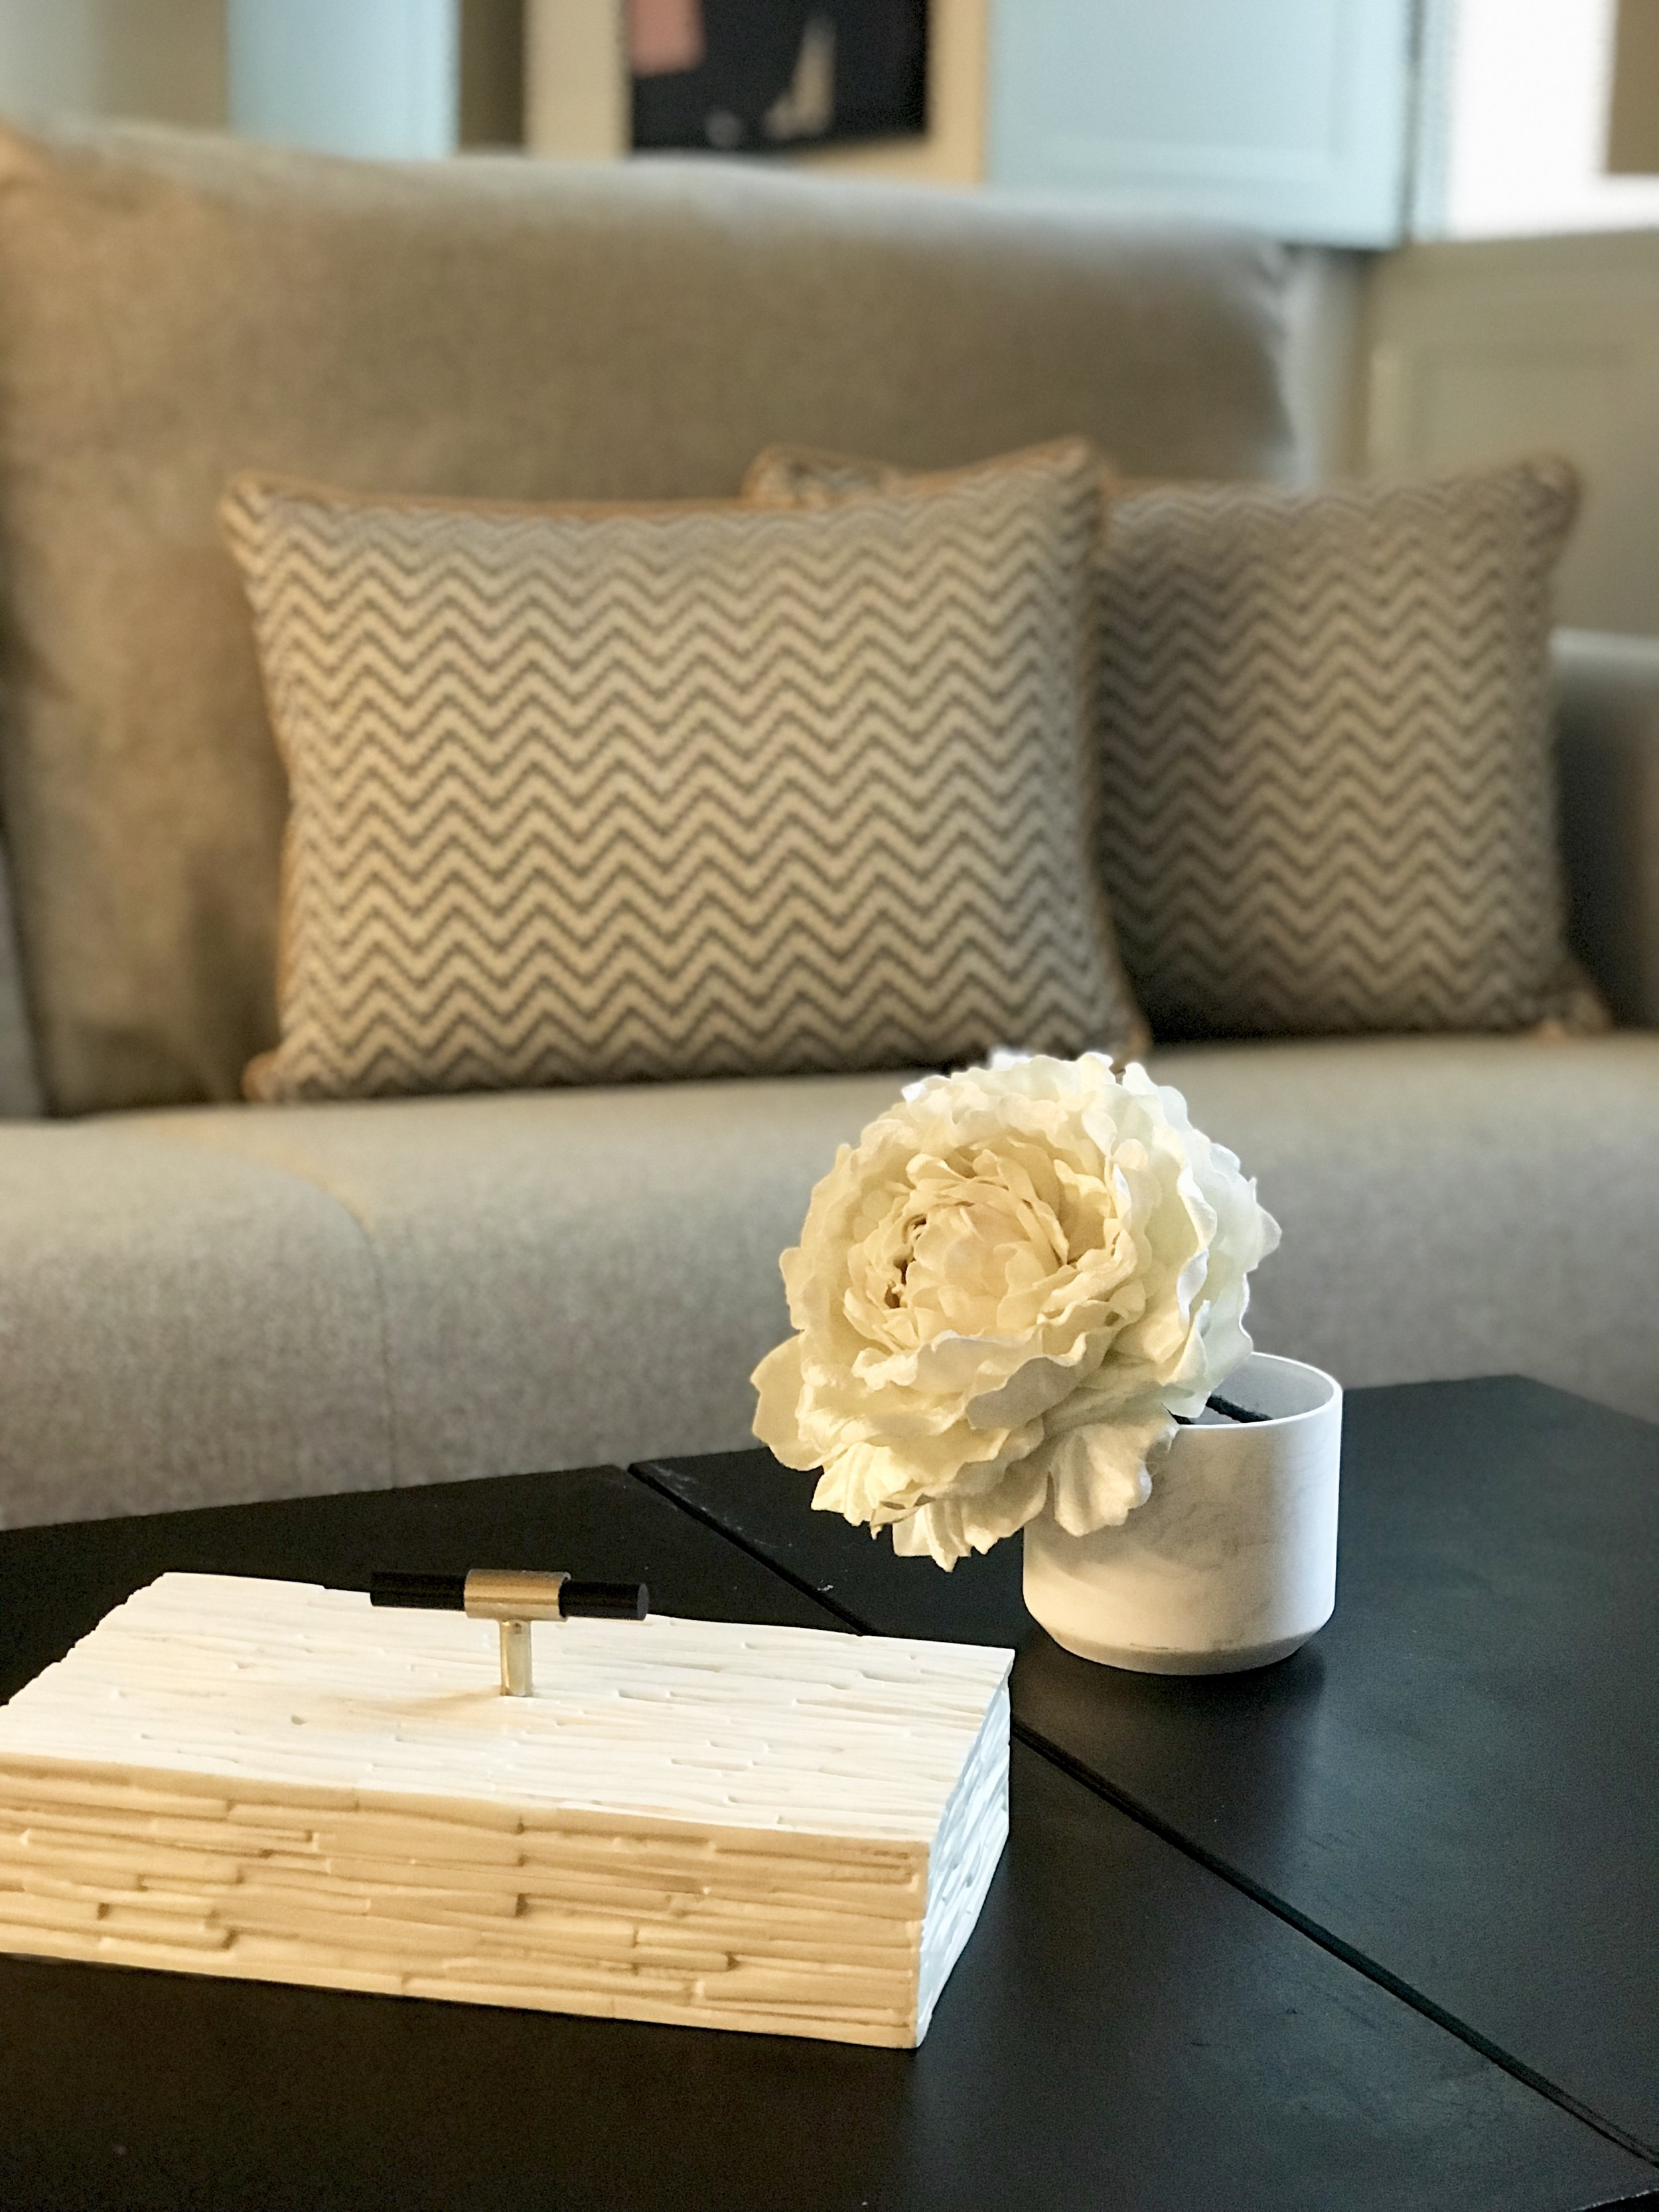 Elegant single white blossom dramatically displayed on a coffee table with sofa.